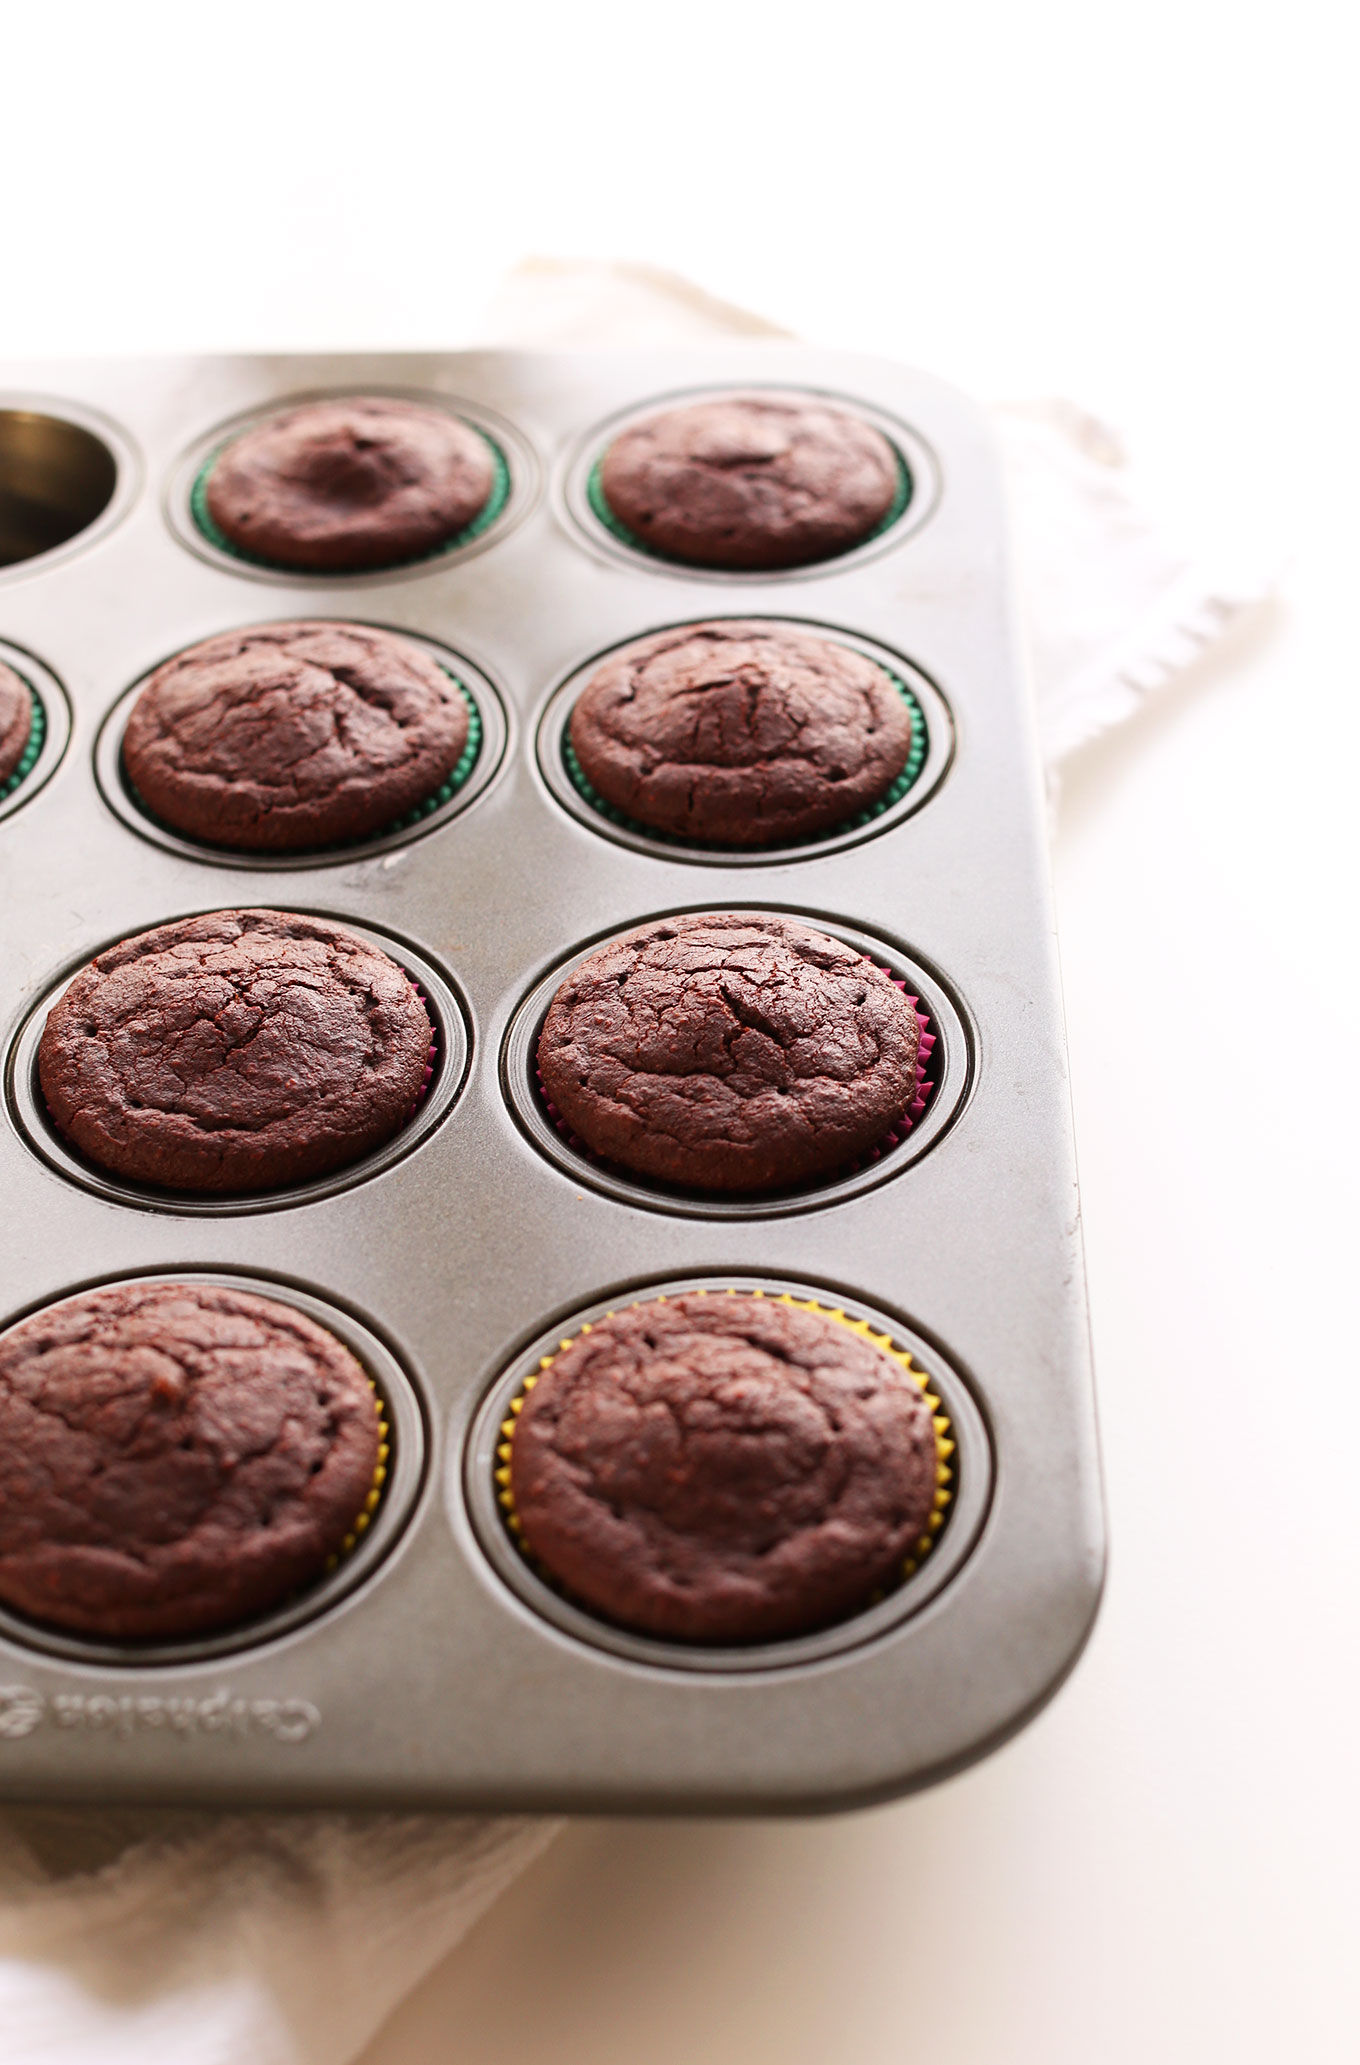 Muffin tin filled with Vegan Gluten-Free Chocolate Cupcakes